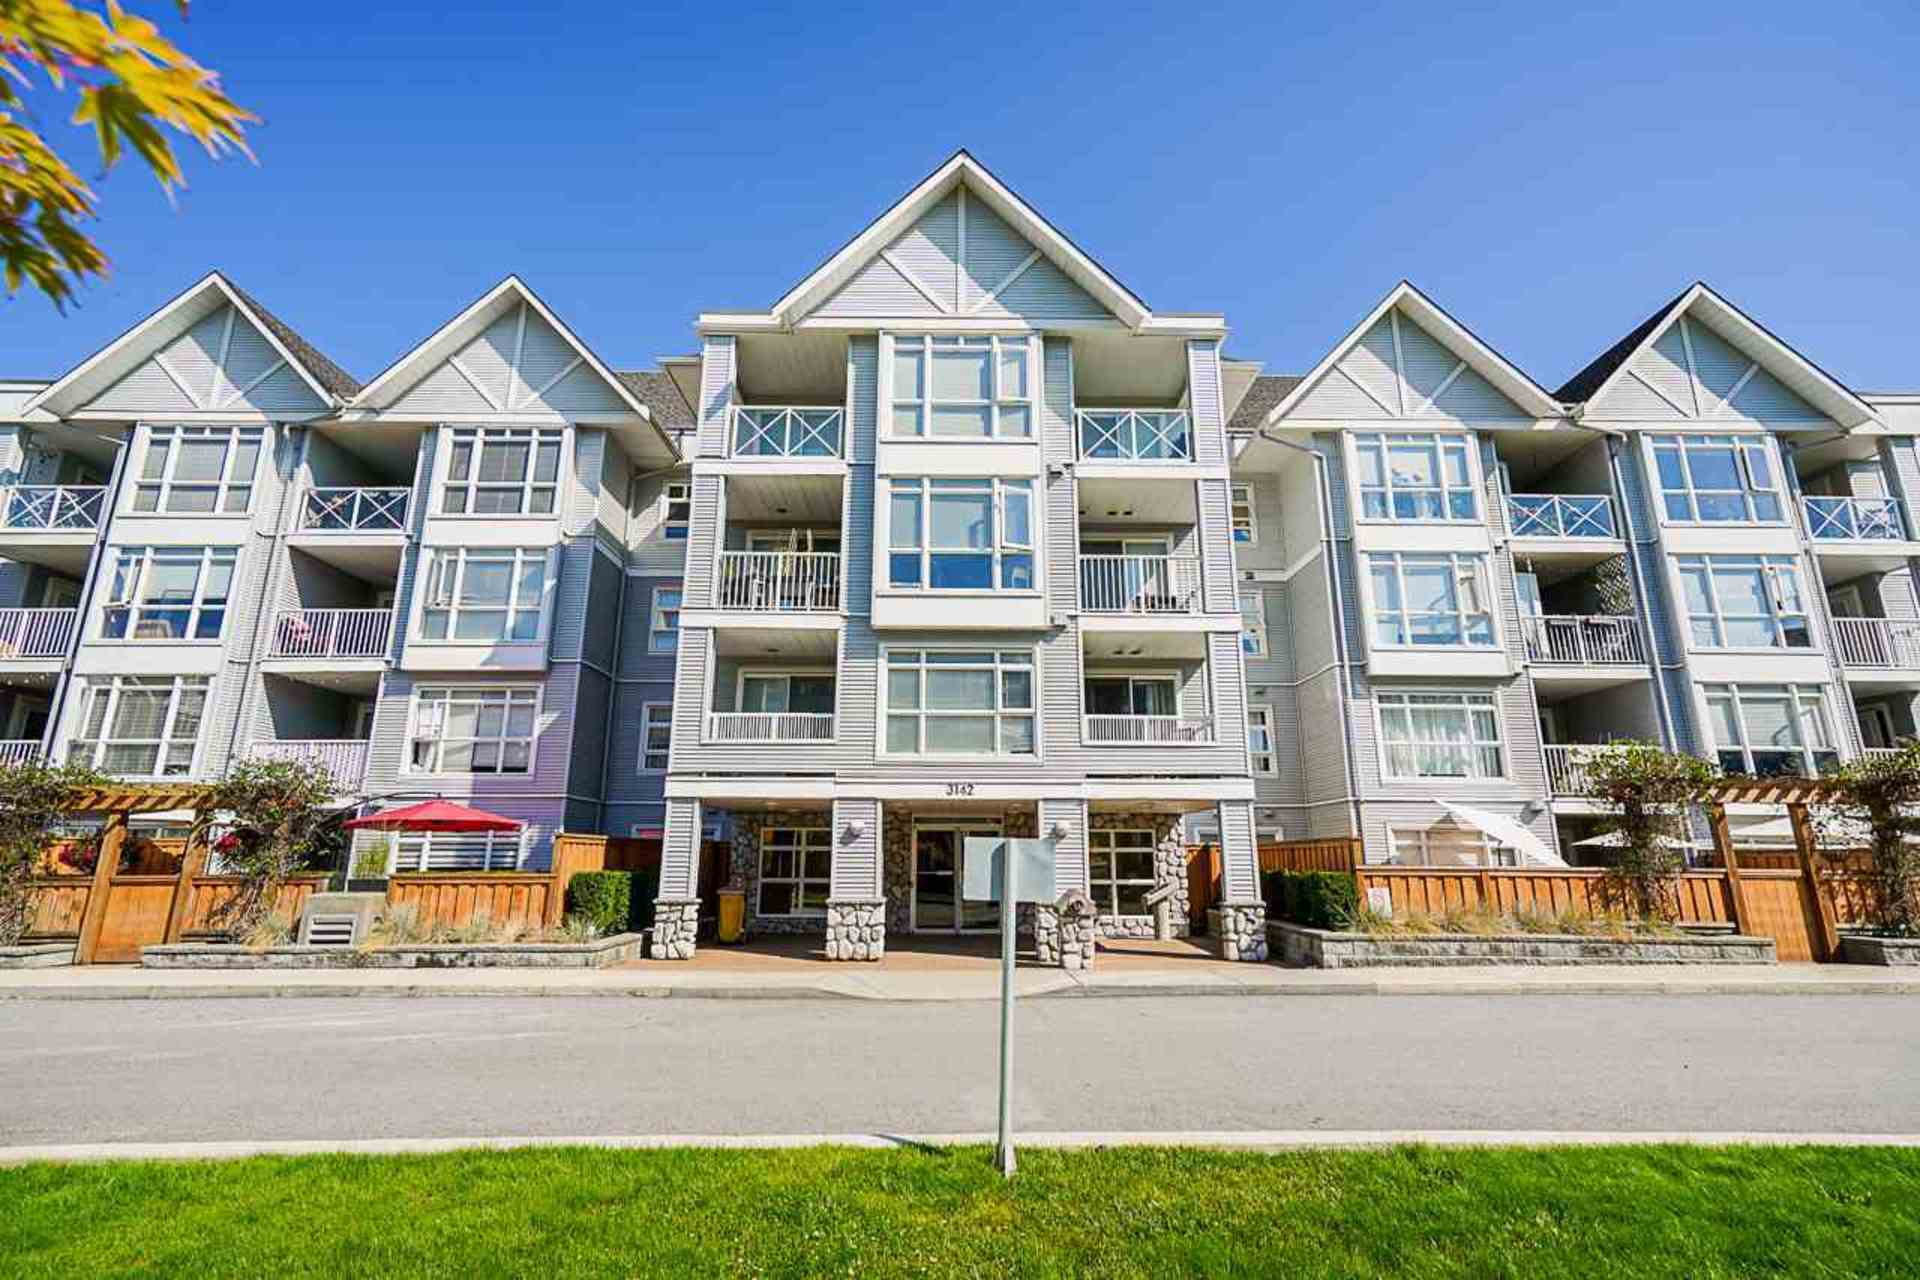 212 - 3142 St Johns Street, Port Moody Centre, Port Moody